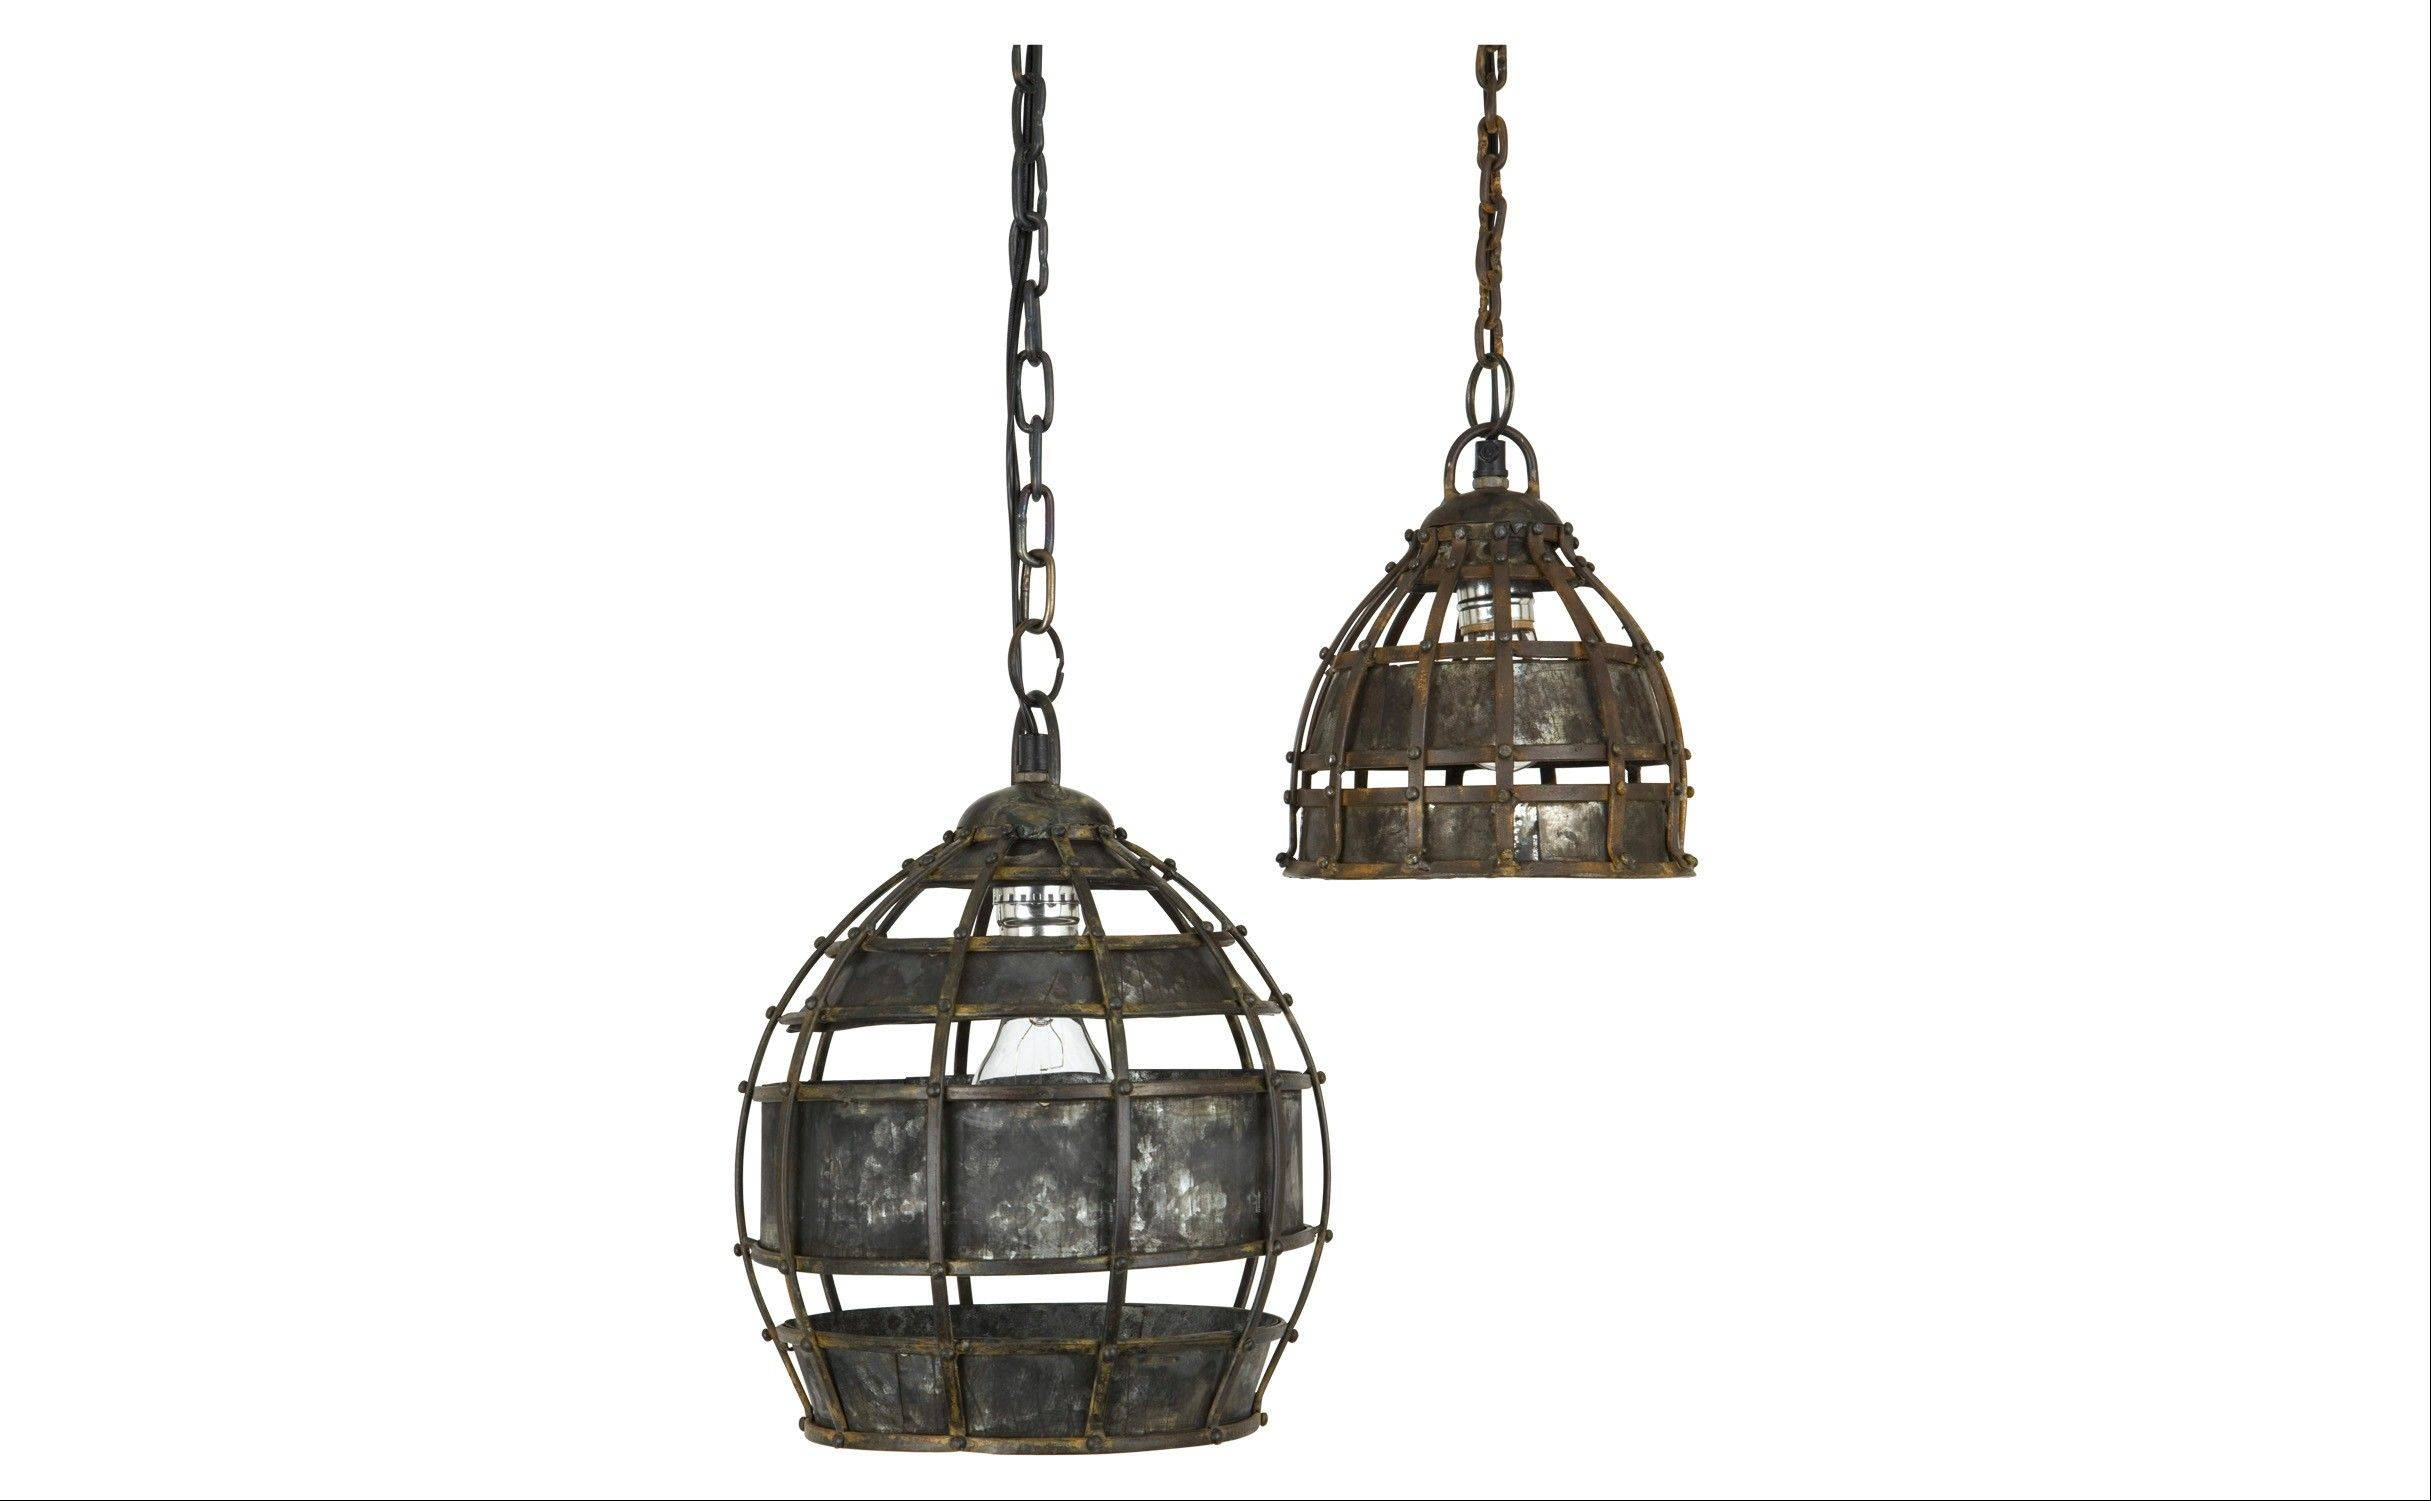 Ludlam pendant lamps. The cage of riveted metal gives the light fixtures an industrial look.